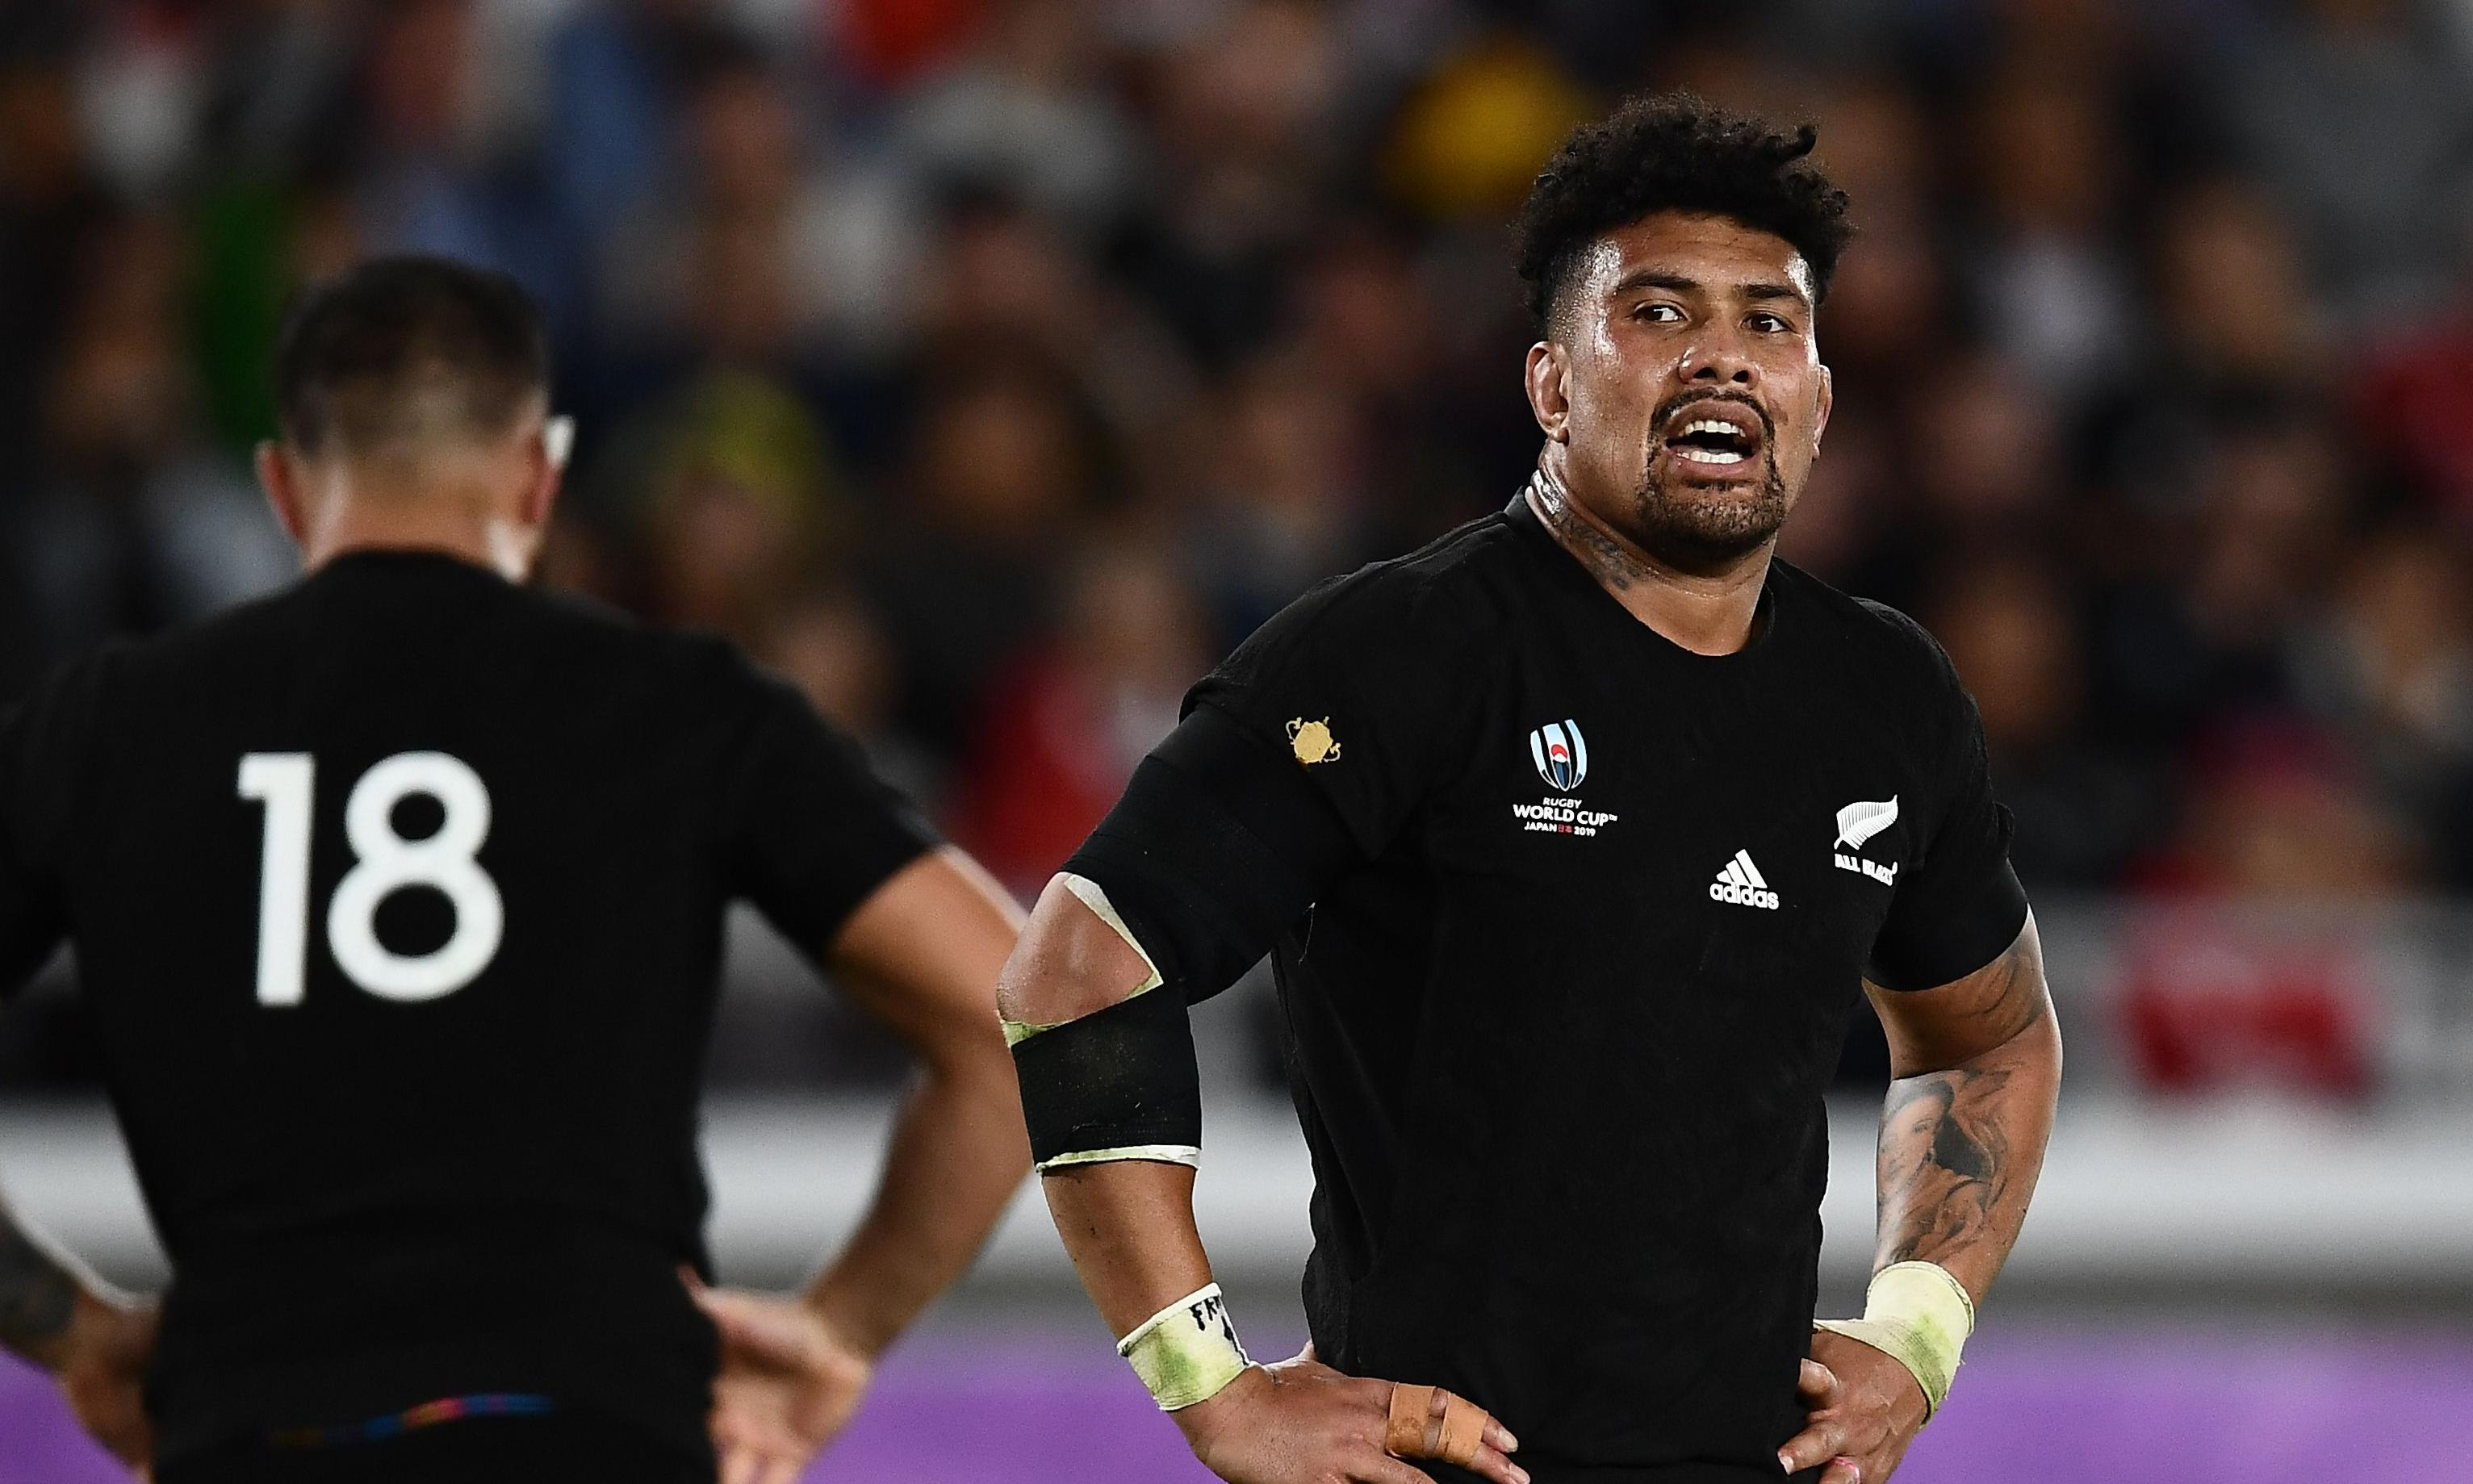 All Blacks star Ardie Savea flags switch from rugby union to NRL